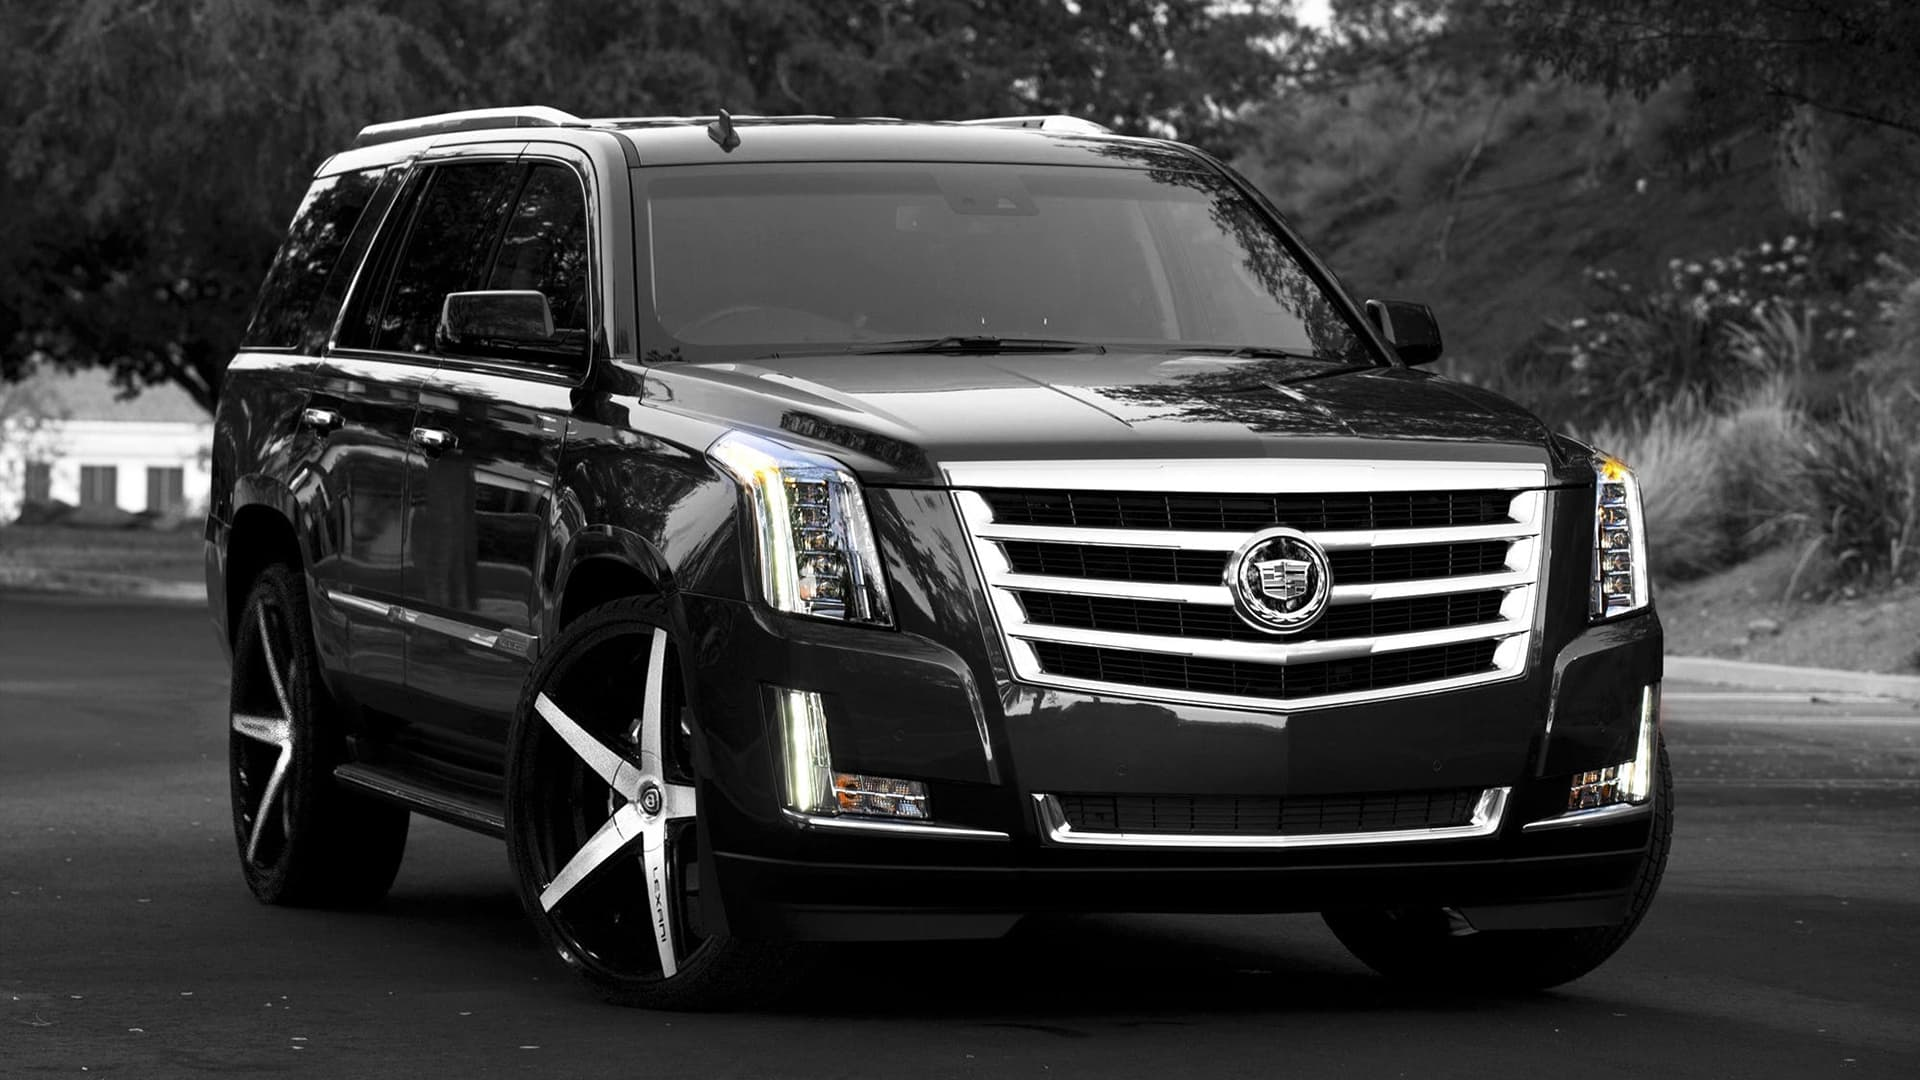 Cadillac Escalade Ext 2017 >> 20+ Cadillac escalade wallpapers HD